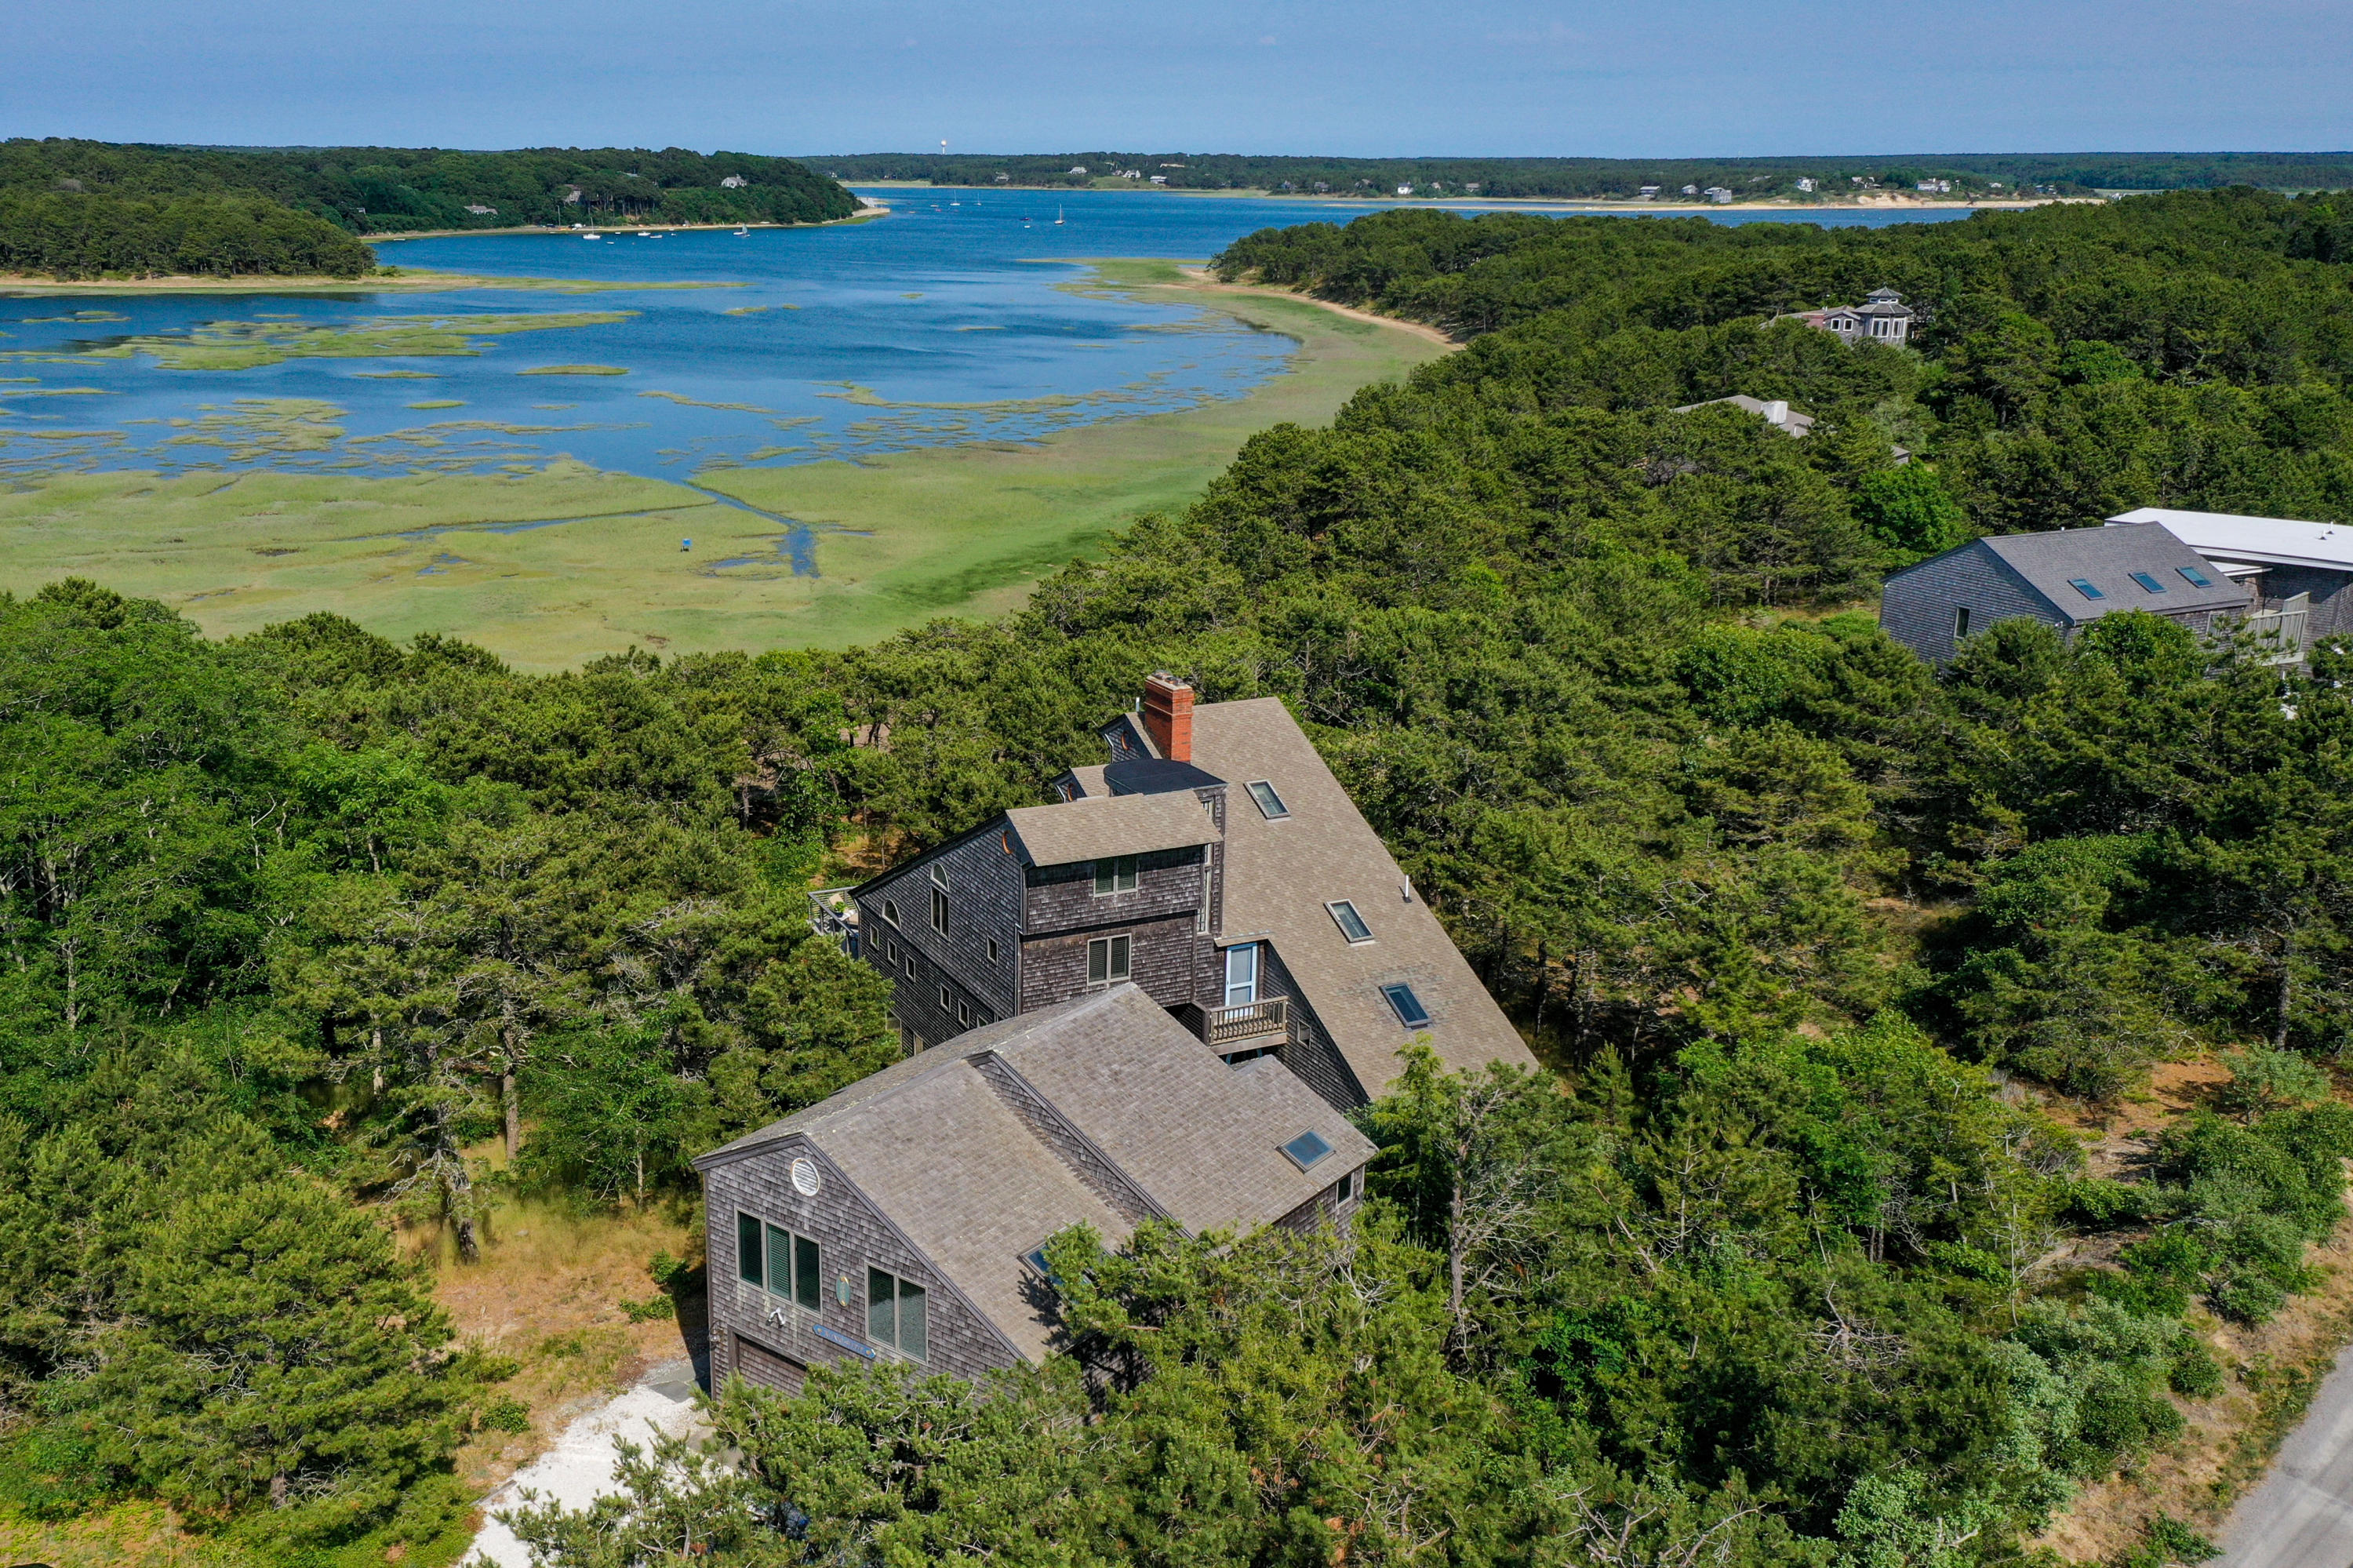 265 King Phillip Road, Wellfleet MA, 02667 details